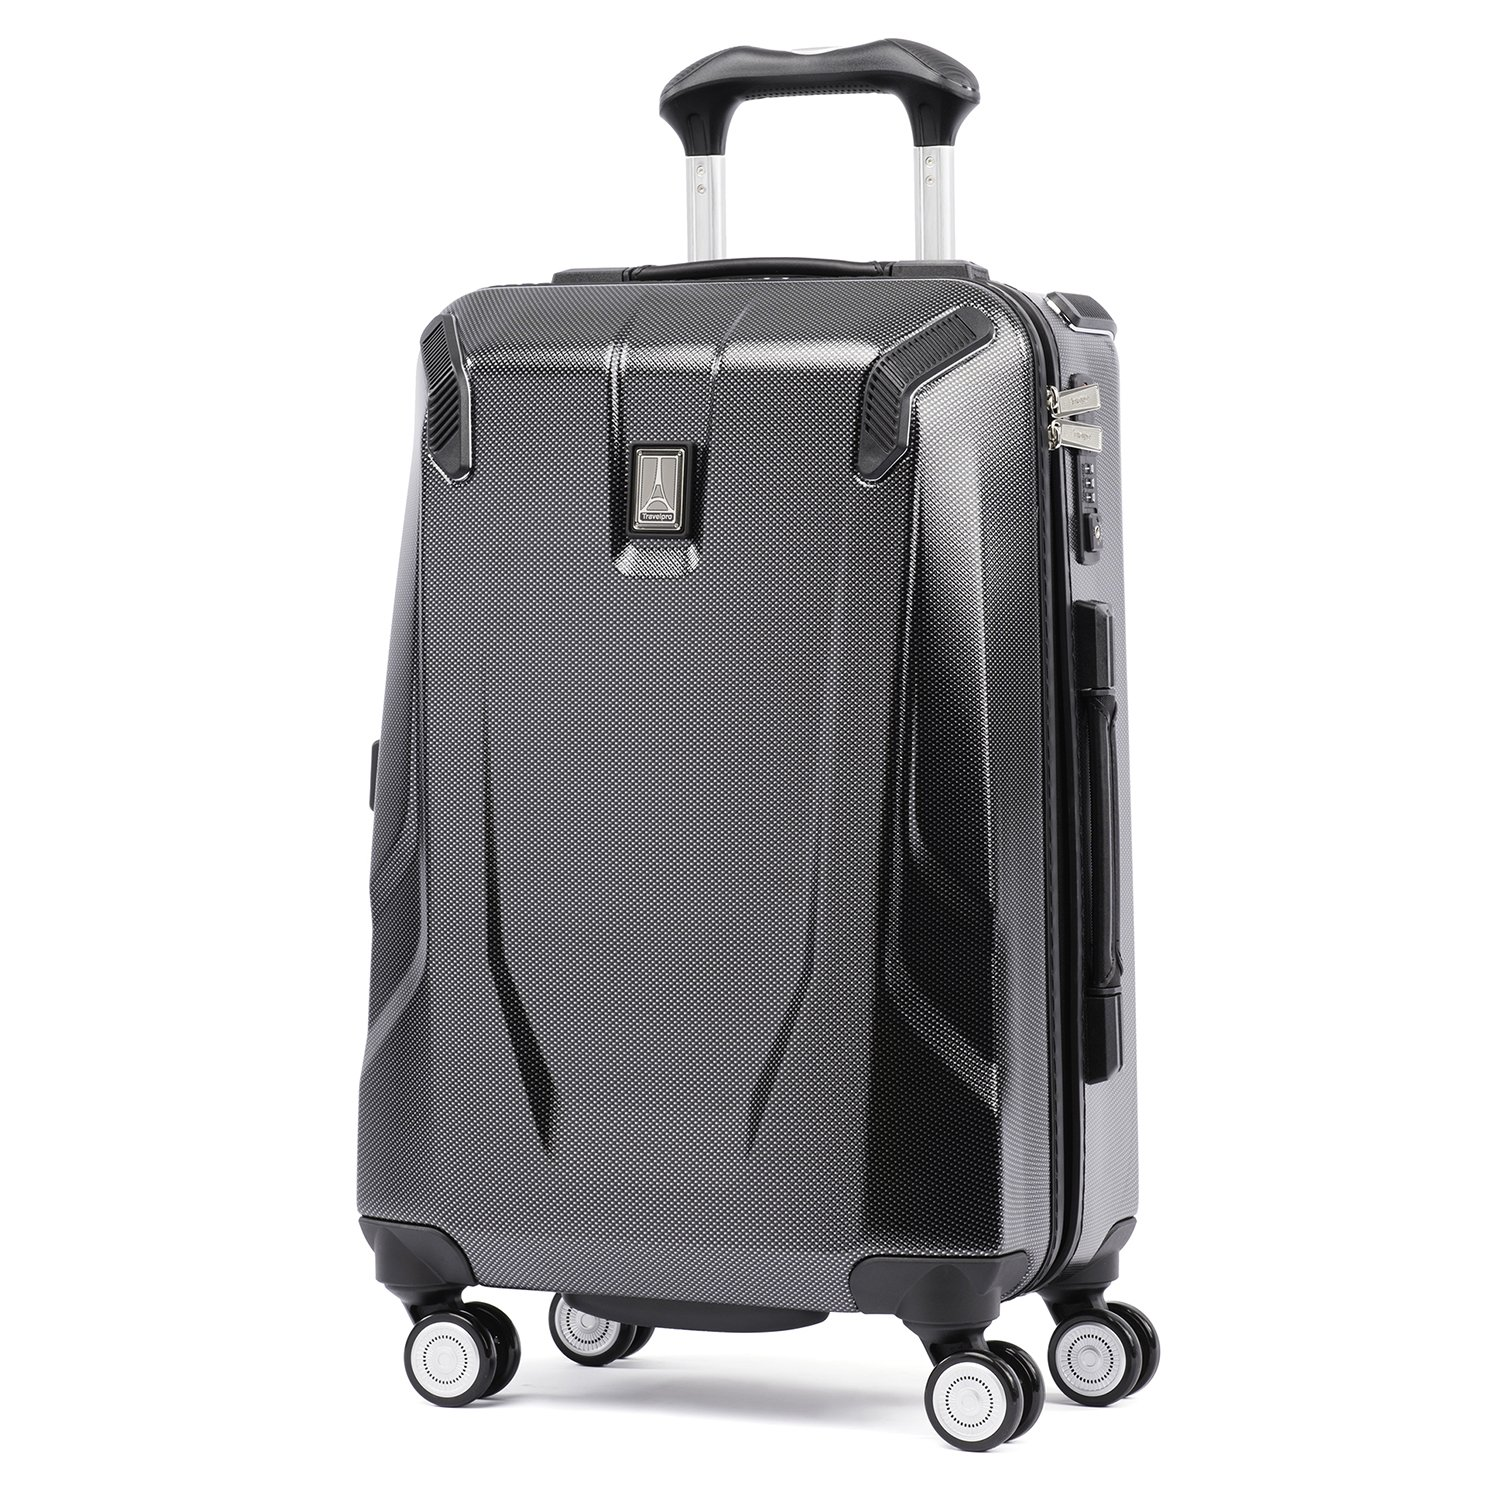 Travelpro Crew 11 21'' Hardside Spinner Suitcase, Carbon Grey